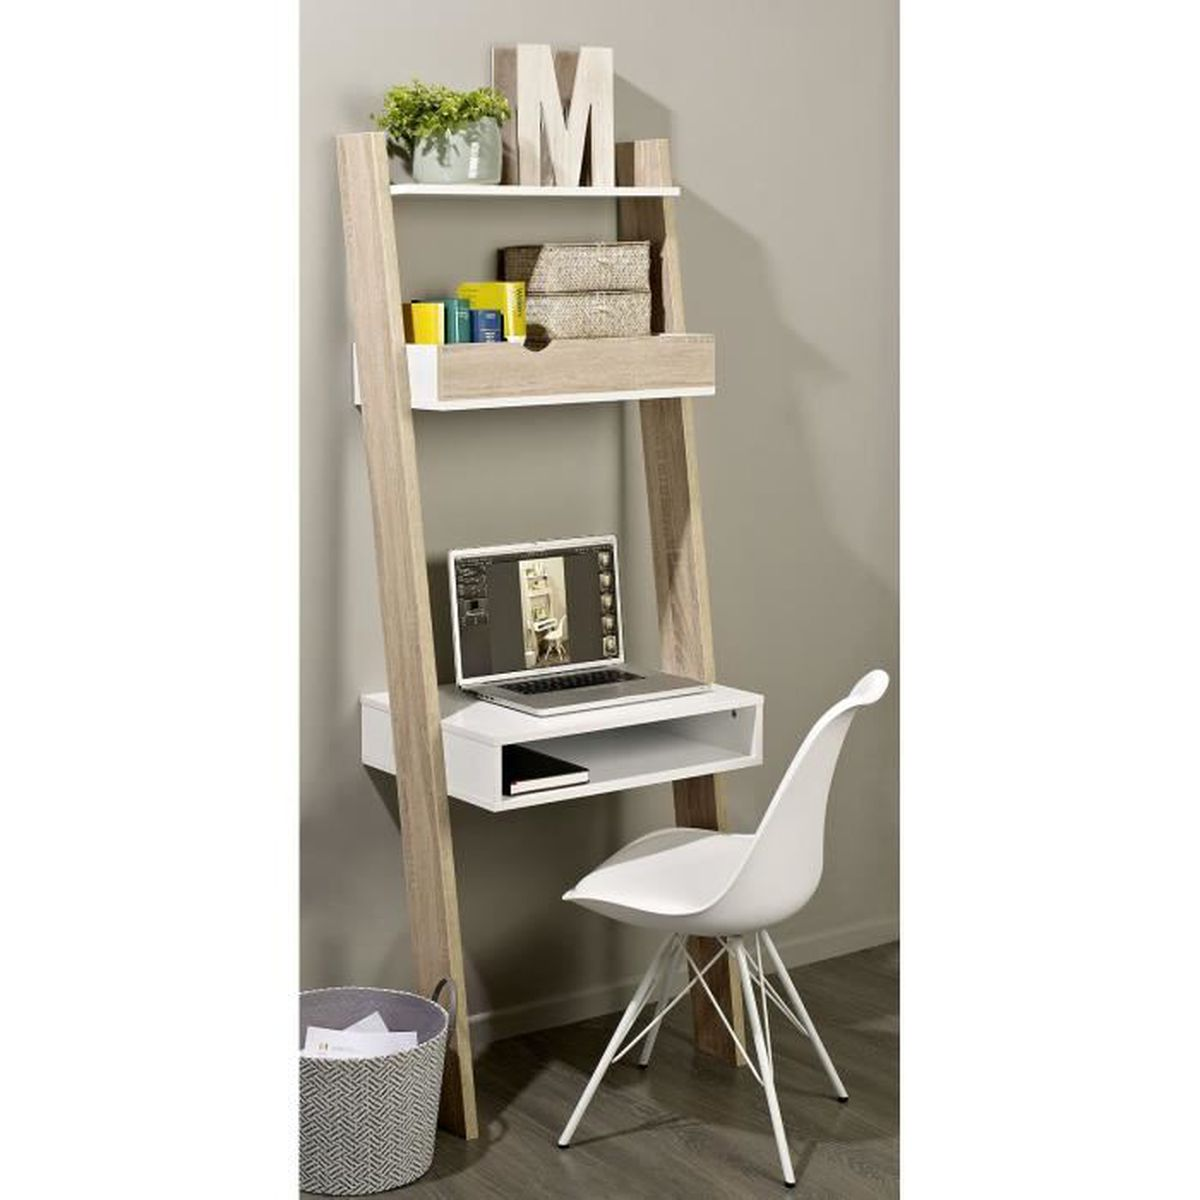 tag re de rangement biblioth que avec bureau cubique et 2. Black Bedroom Furniture Sets. Home Design Ideas